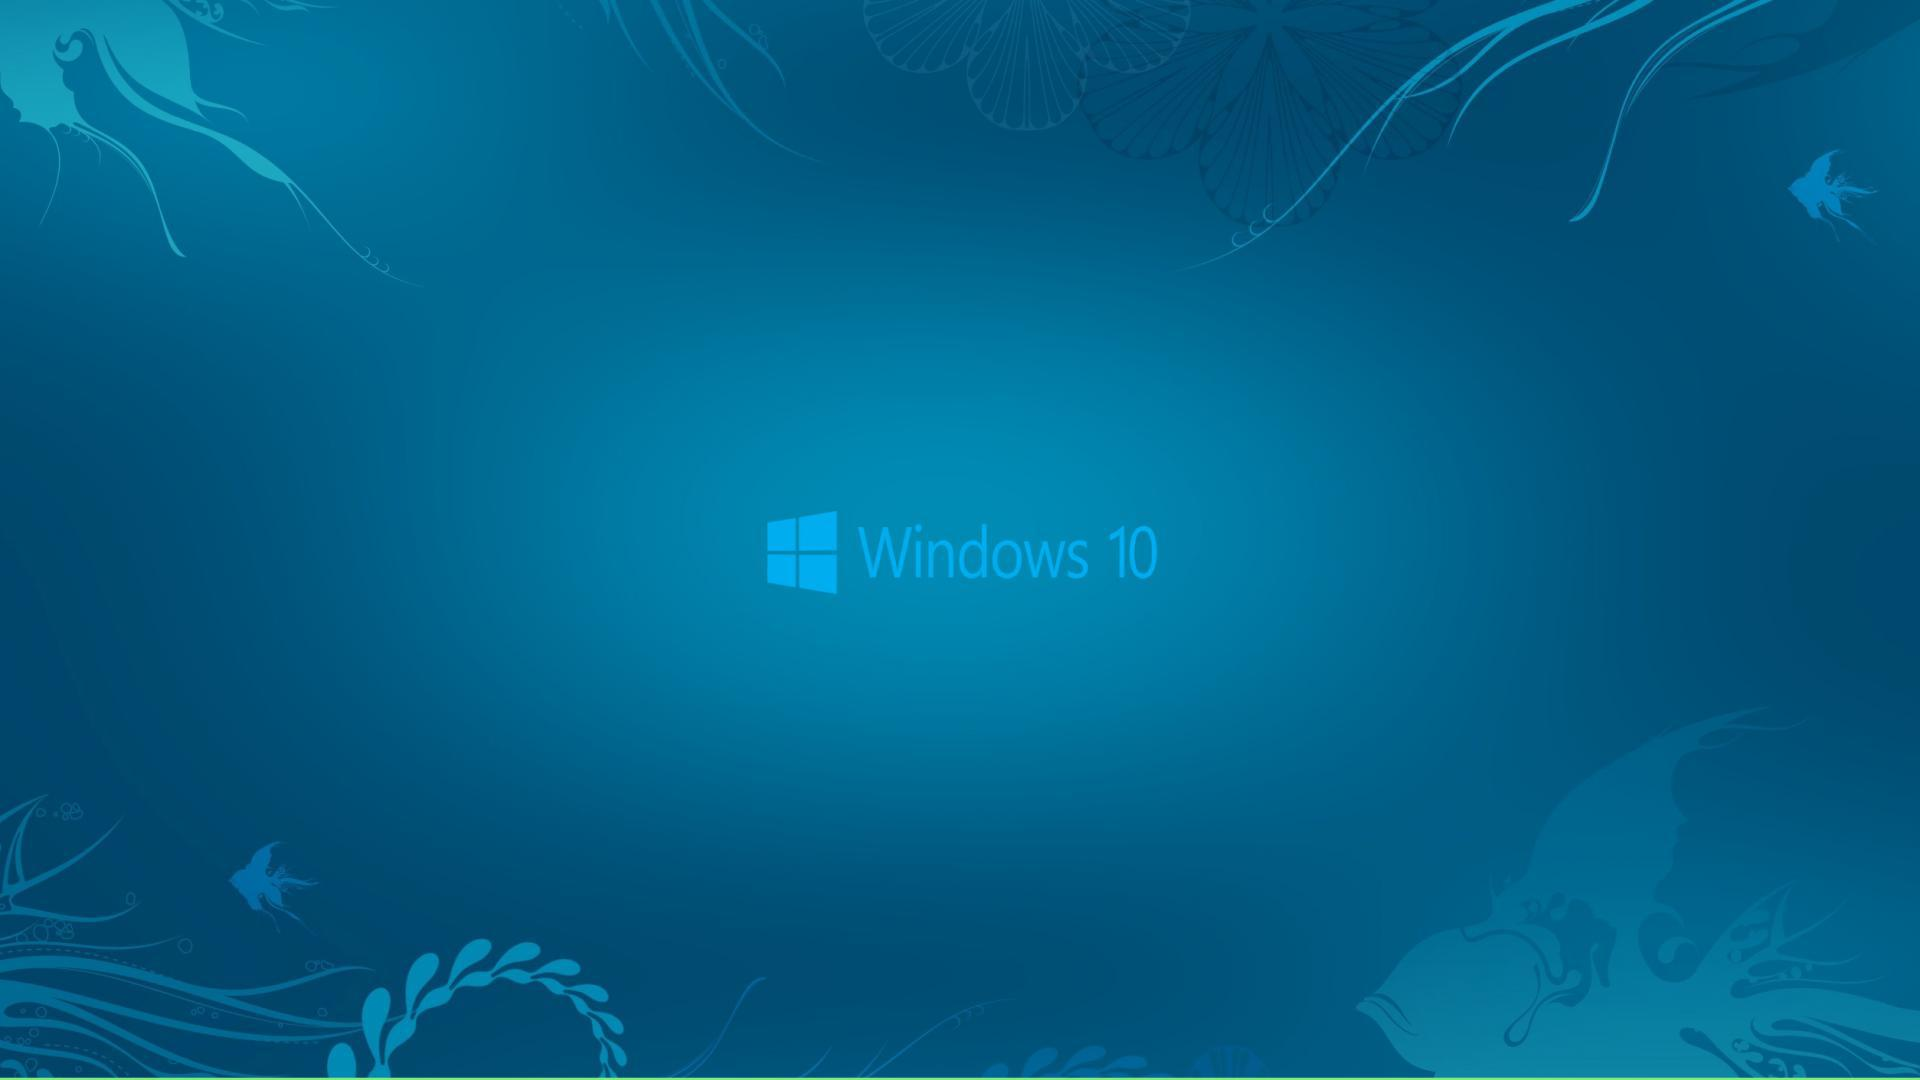 Windows 10 Wallpapers Operating Systems Wallpapers Ingroundpoolxyz 1920x1080